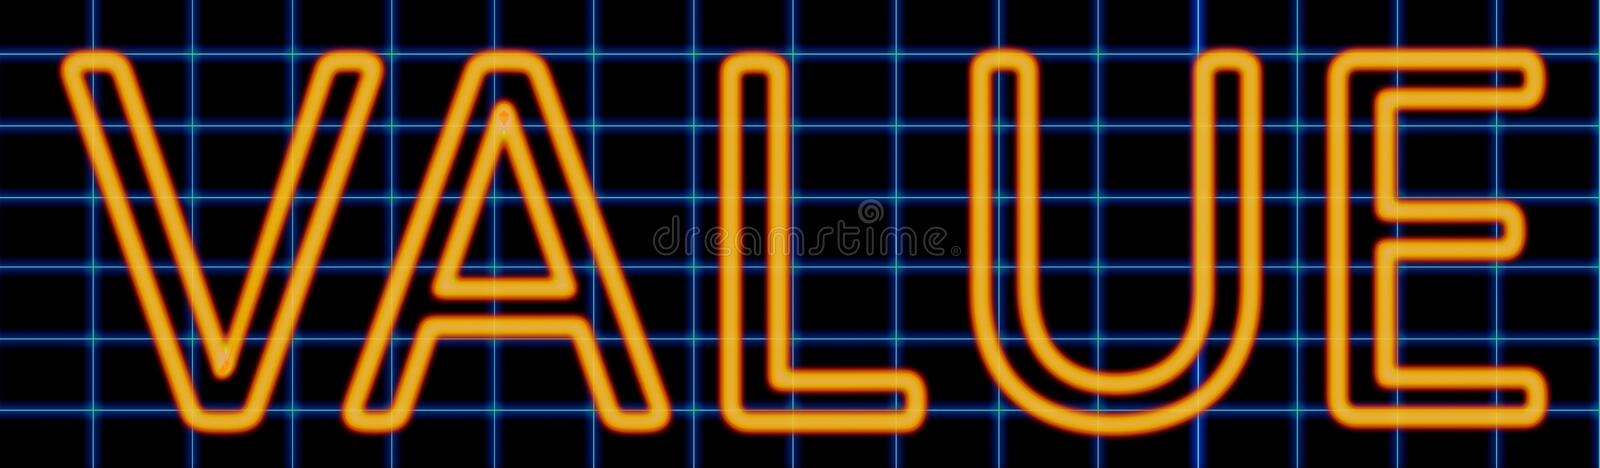 Value neon sign vector illustration